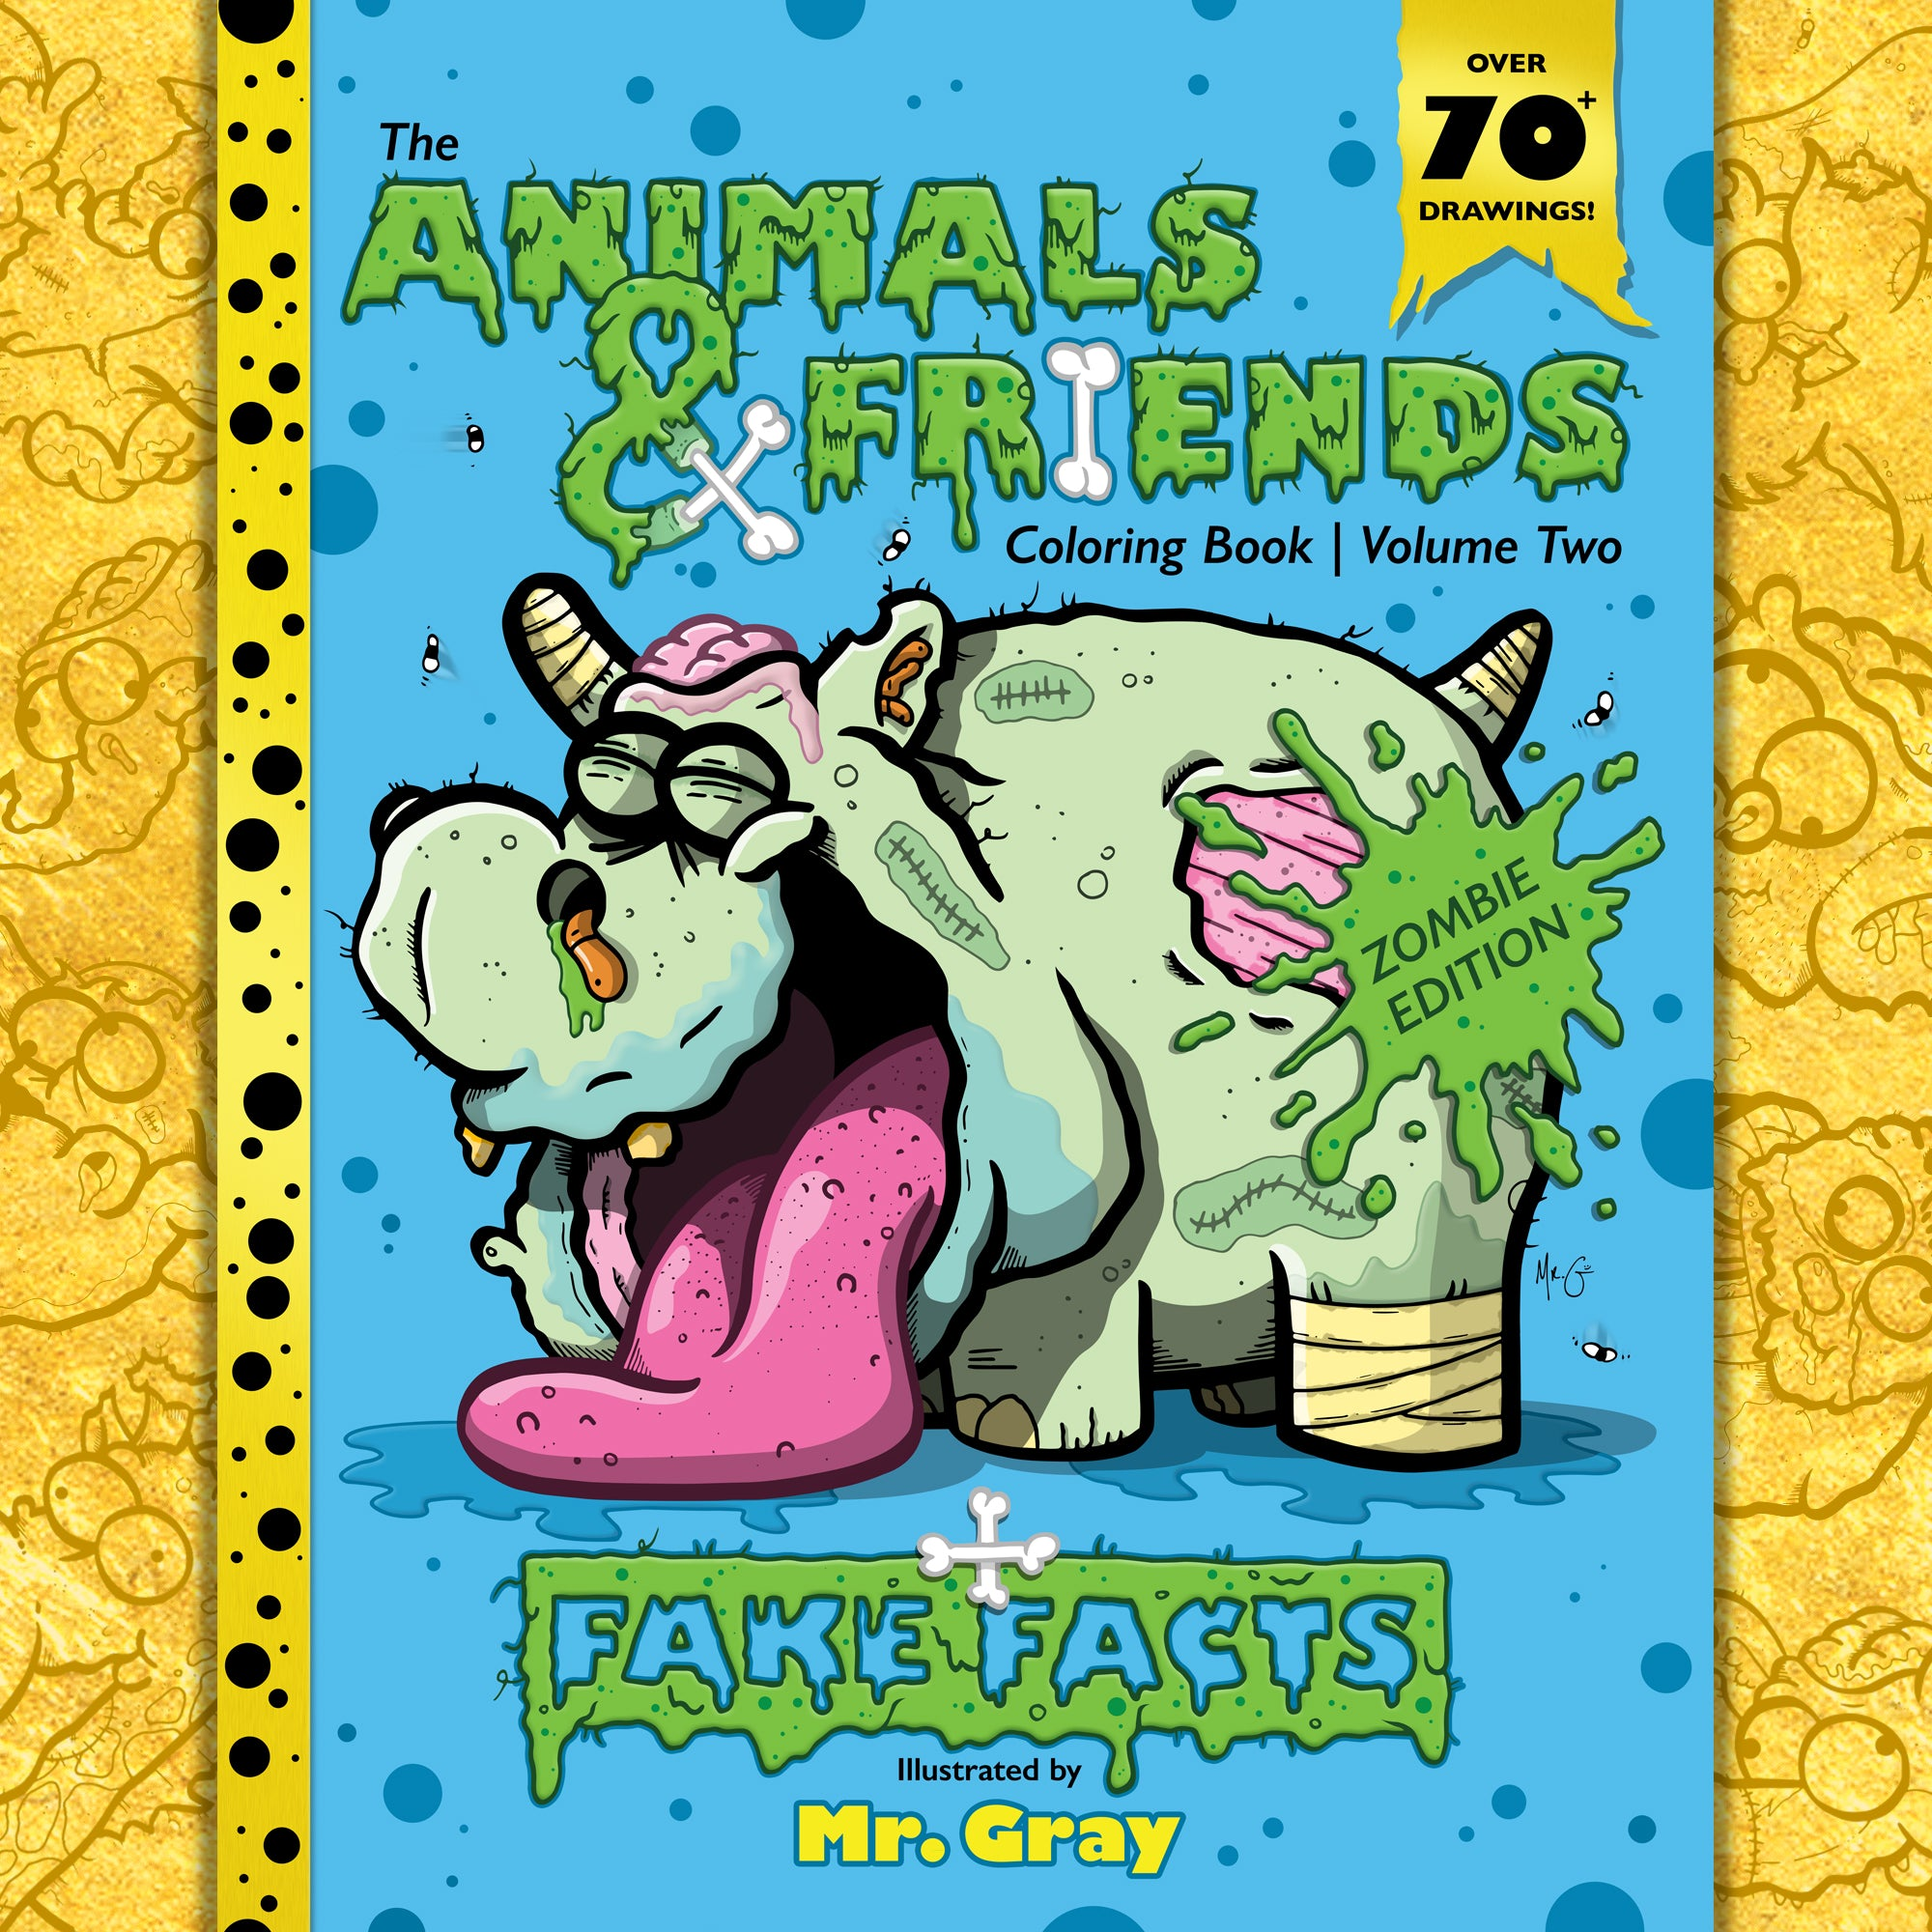 copyright-©-2018-the-animals-and-friends-coloring-book-zombie-edition-volume-two-by-mr-gray-look-inside-02